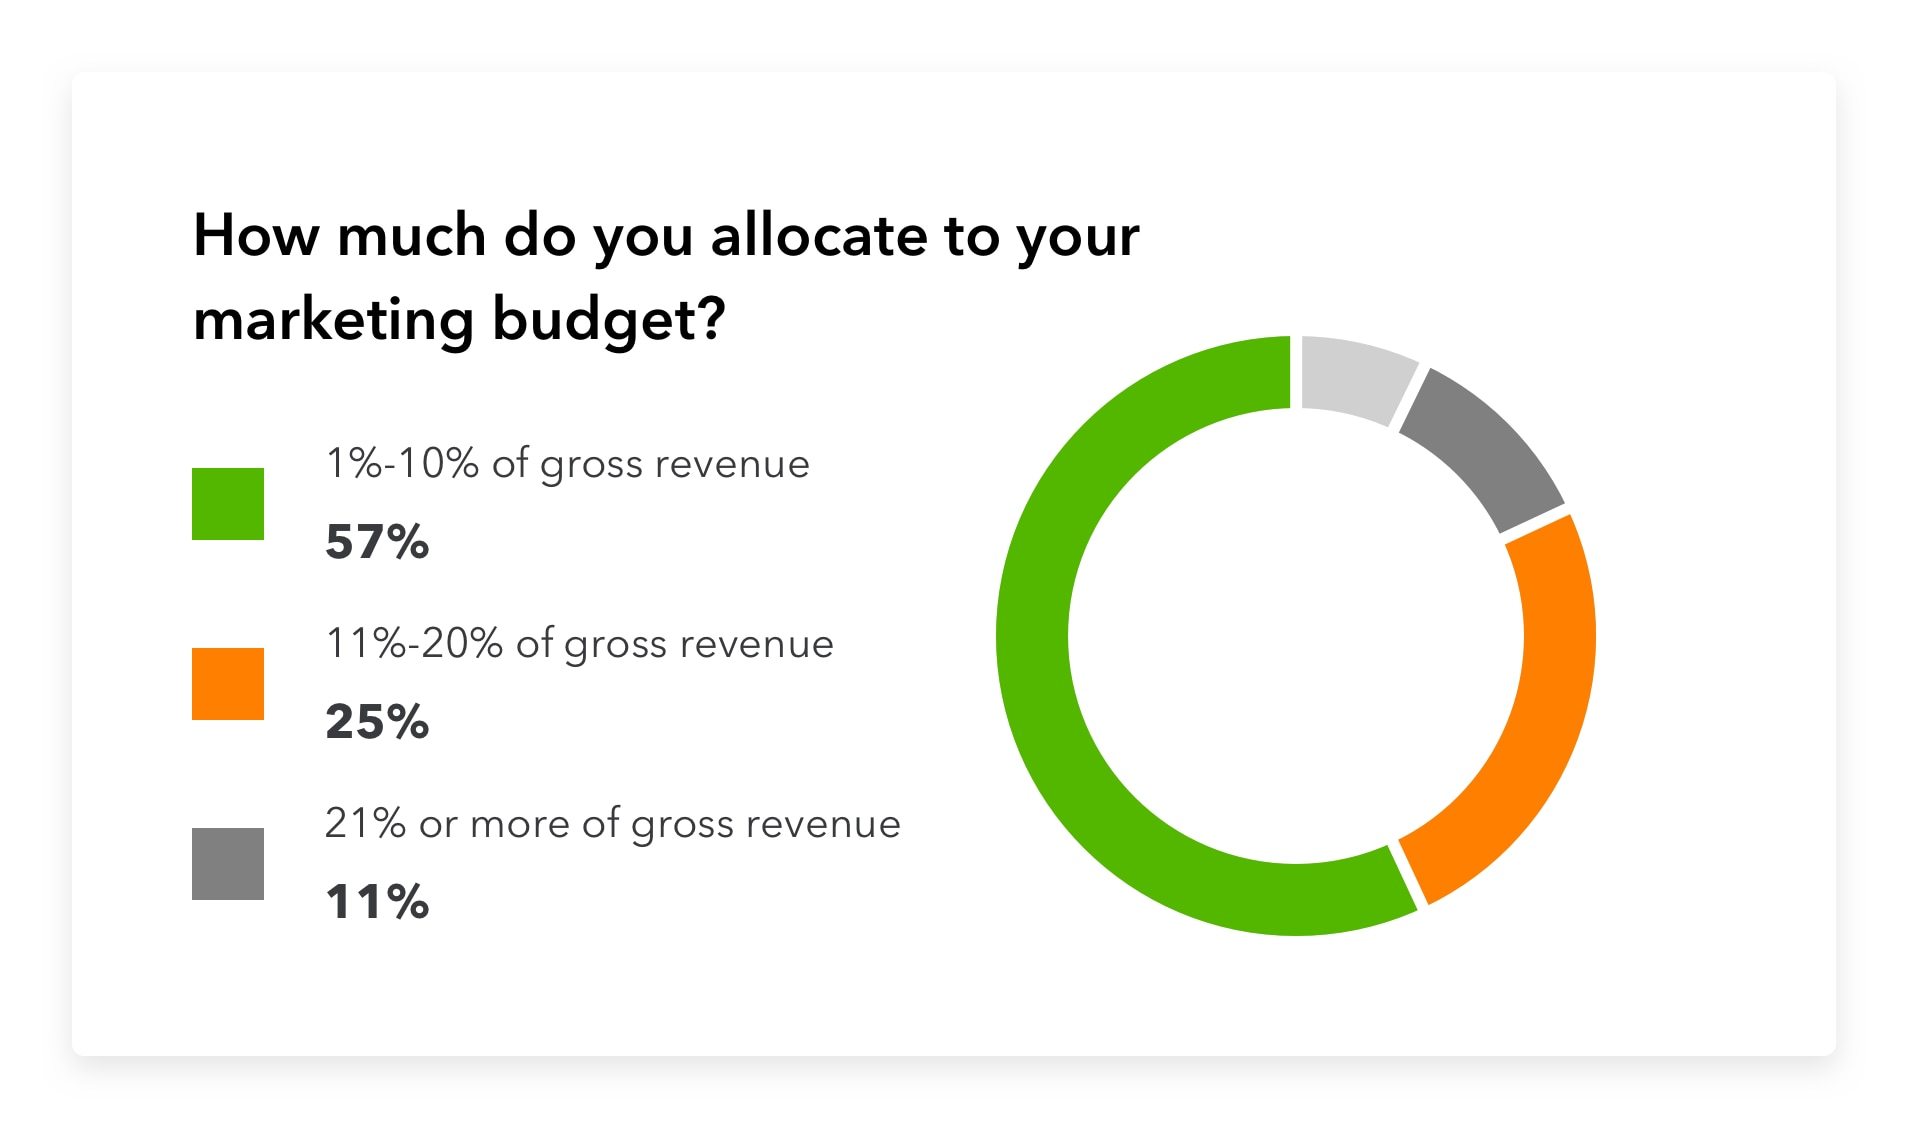 How much do you allocate to your marketing budget?